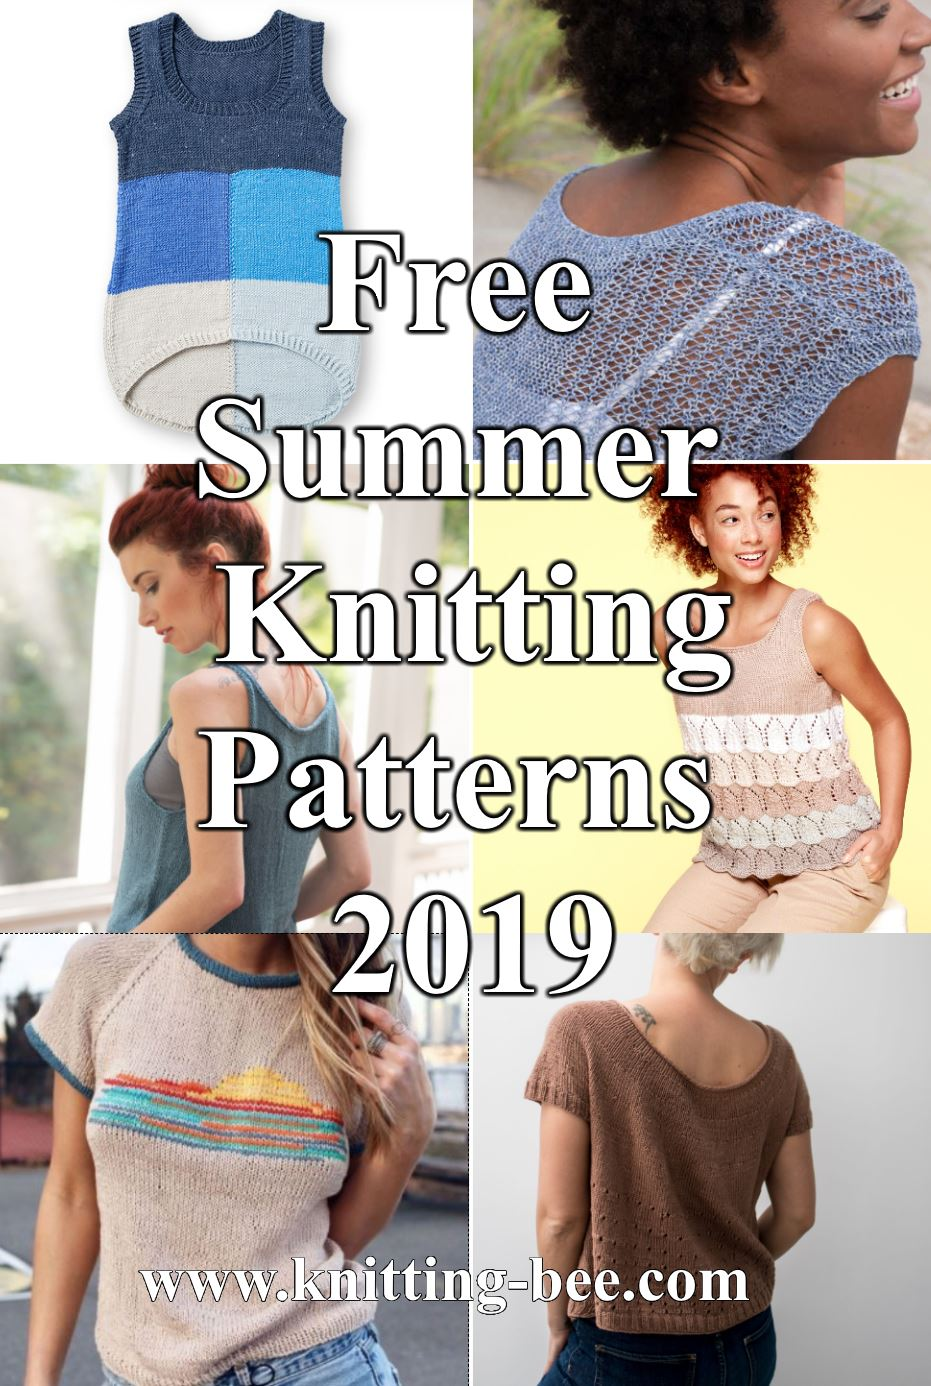 Free Summer Knitting Patterns 2019 - Summer Knitting